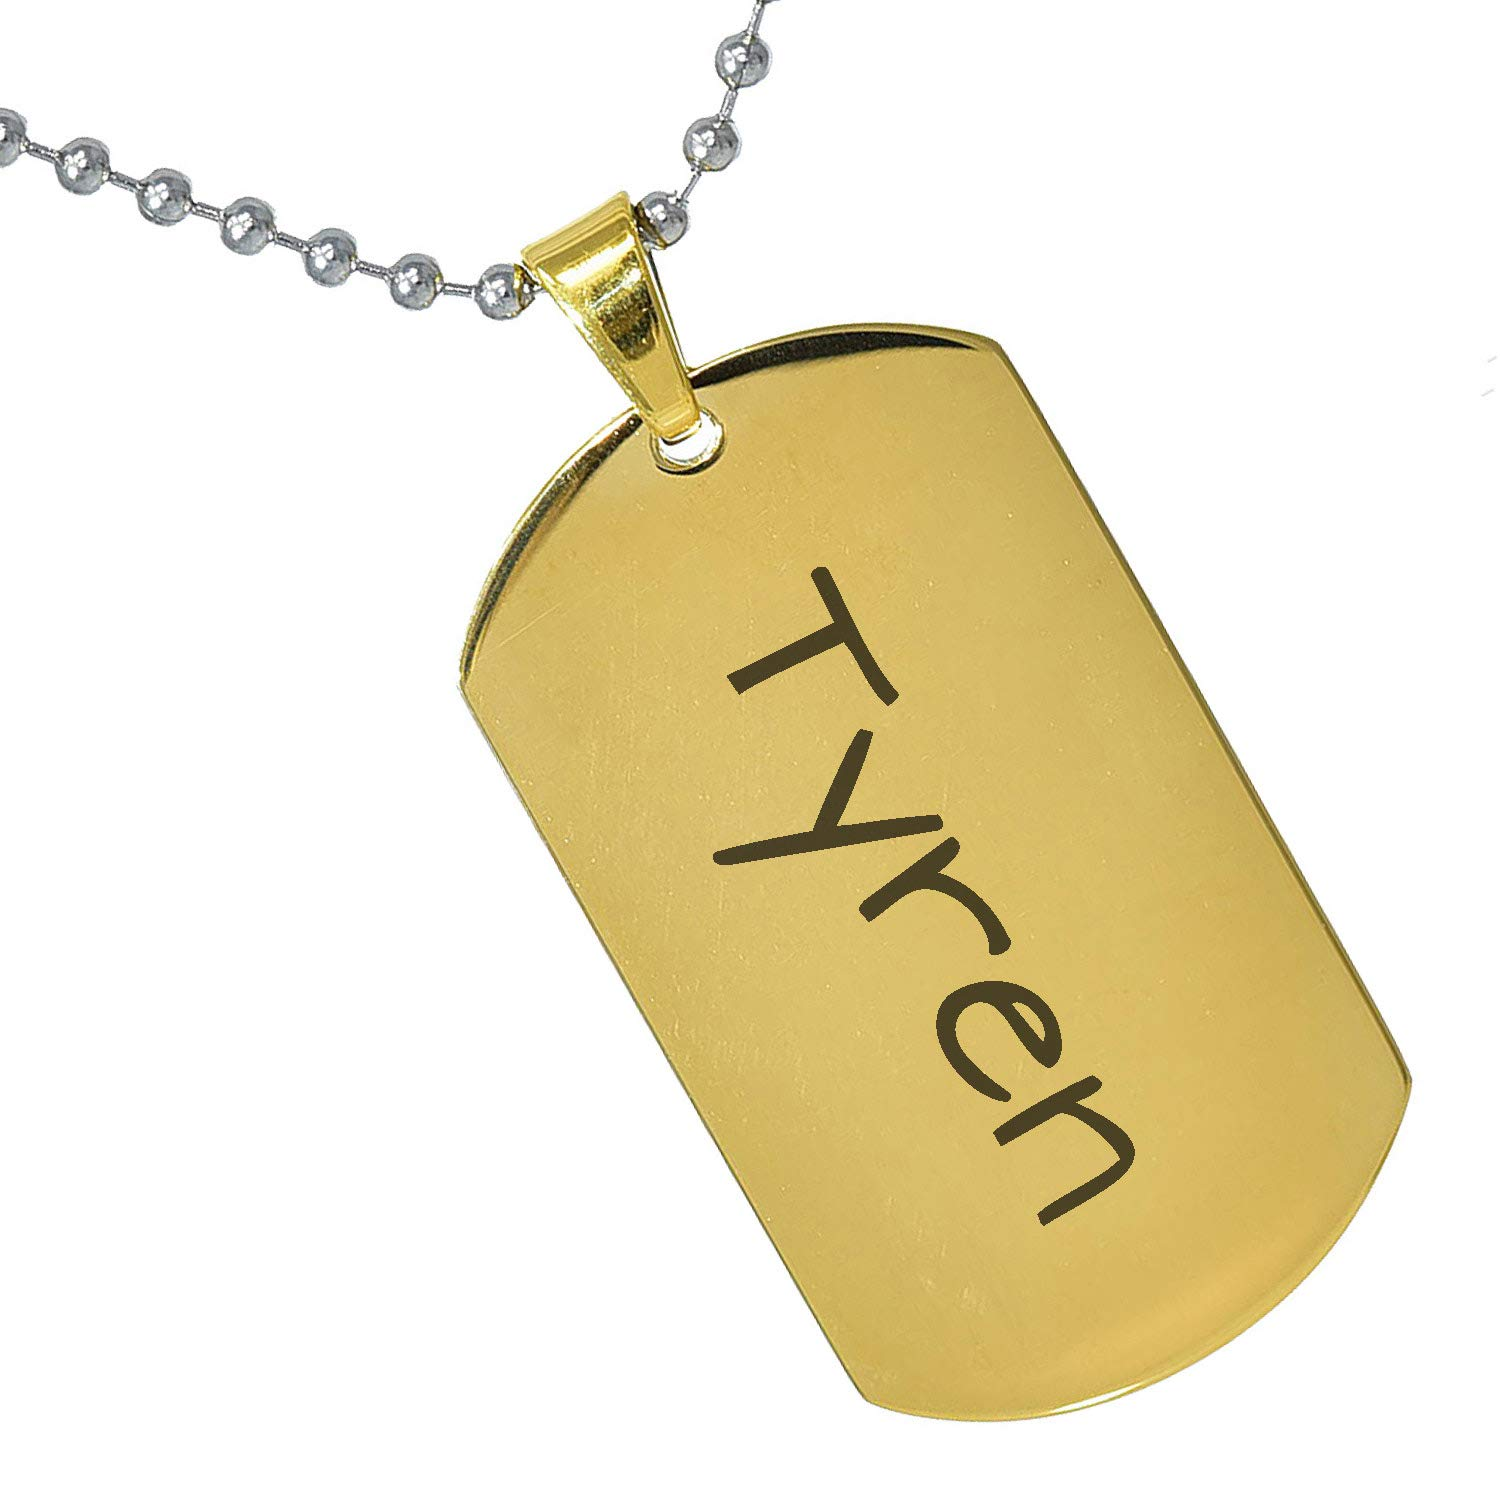 Stainless Steel Silver Gold Black Rose Gold Color Baby Name Tyren Engraved Personalized Gifts For Son Daughter Boyfriend Girlfriend Initial Customizable Pendant Necklace Dog Tags 24 Ball Chain